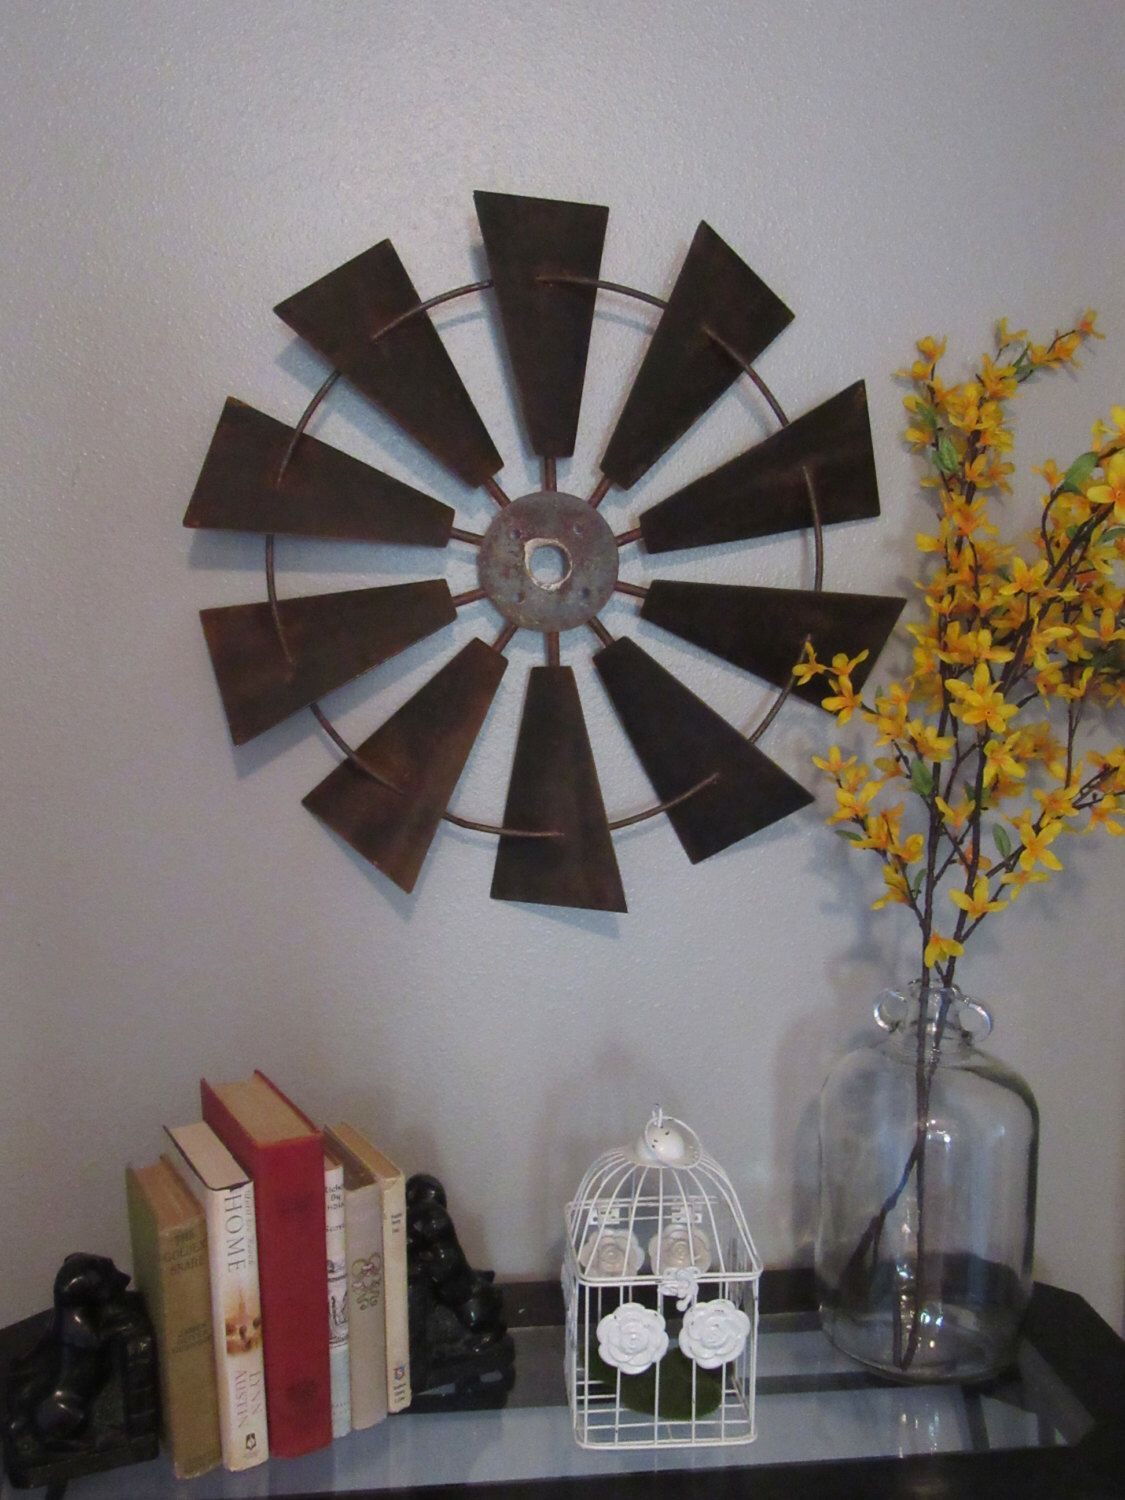 Industrial Wall Decor 24 Inch Full Windmill Head Wall Decor Rustic Farmhouse Industrial